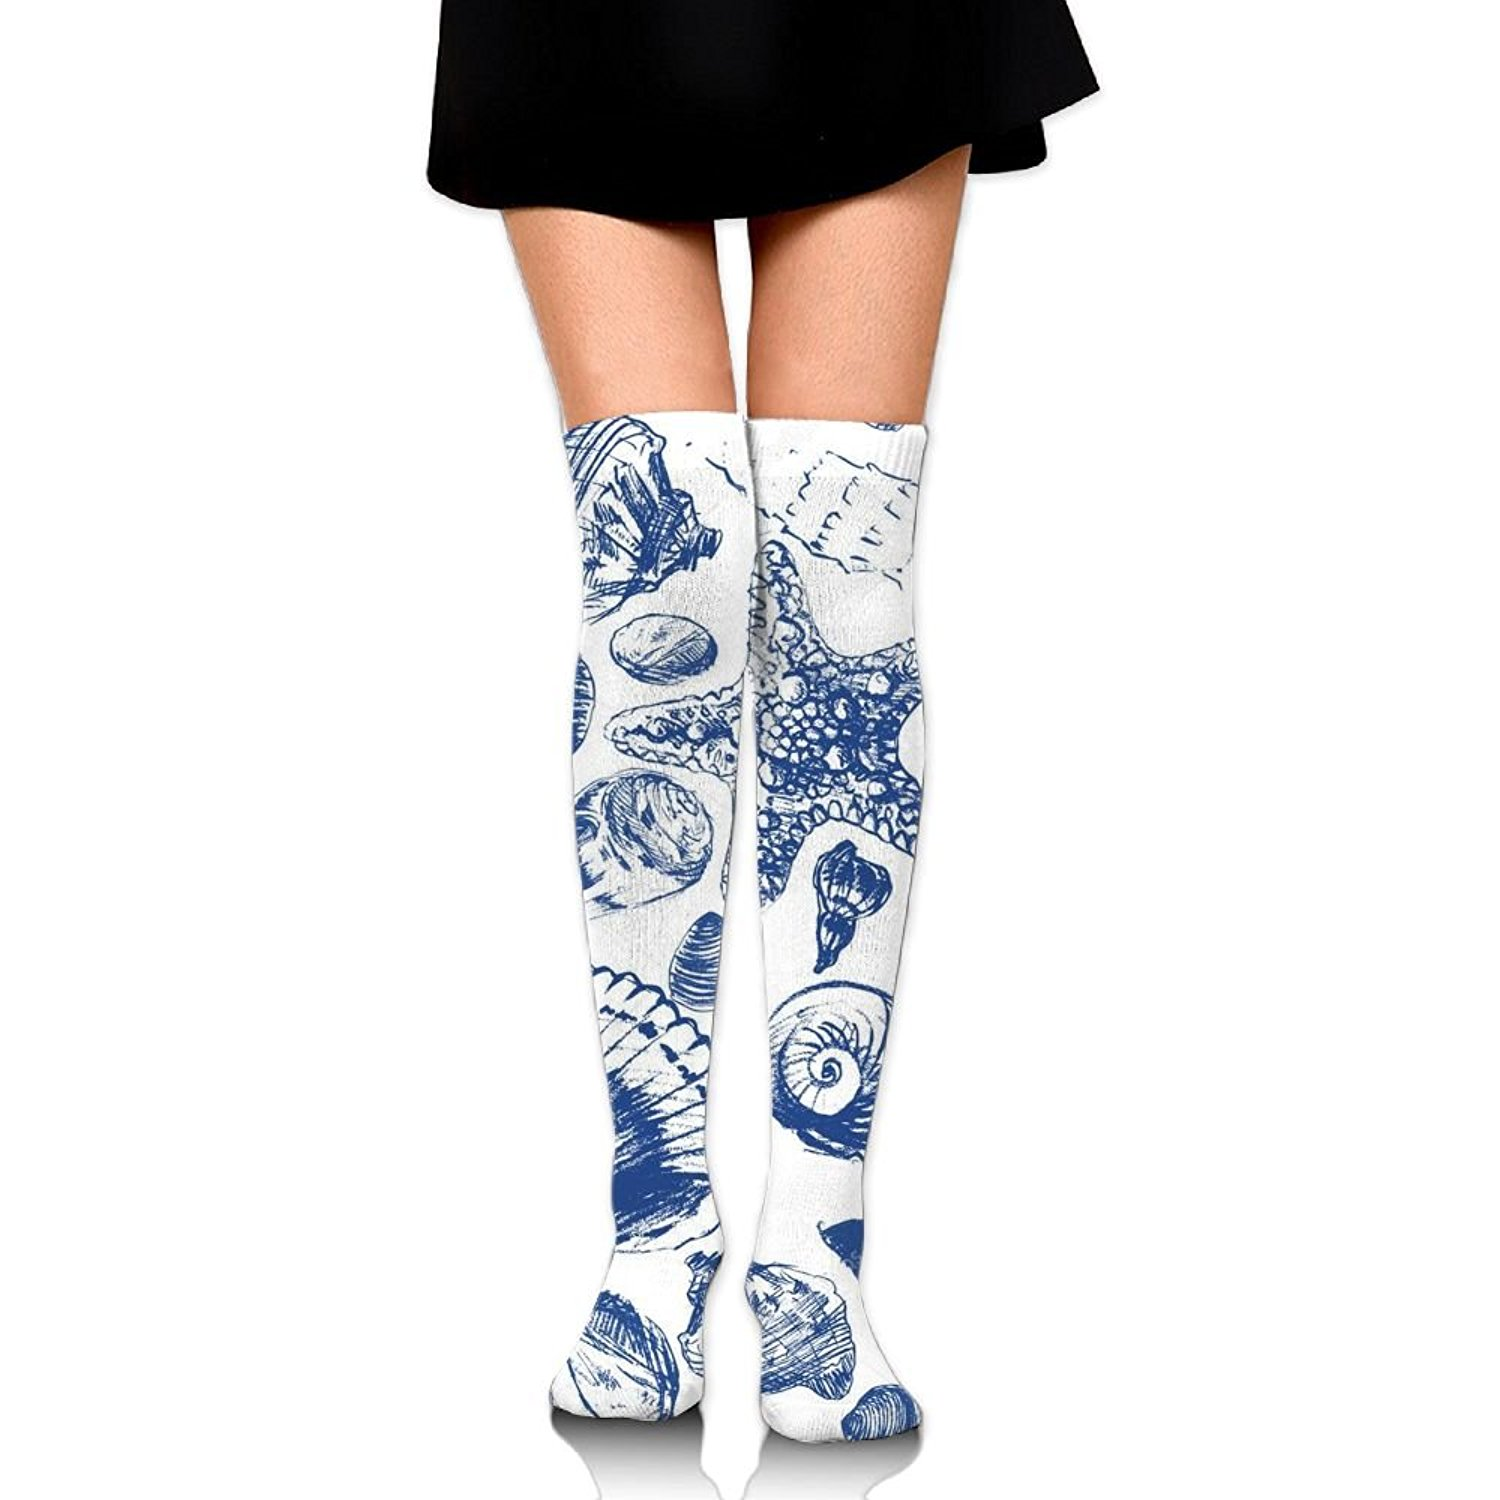 Zaqxsw Shell Women Unique Thigh High Socks Thermal Socks For Girls